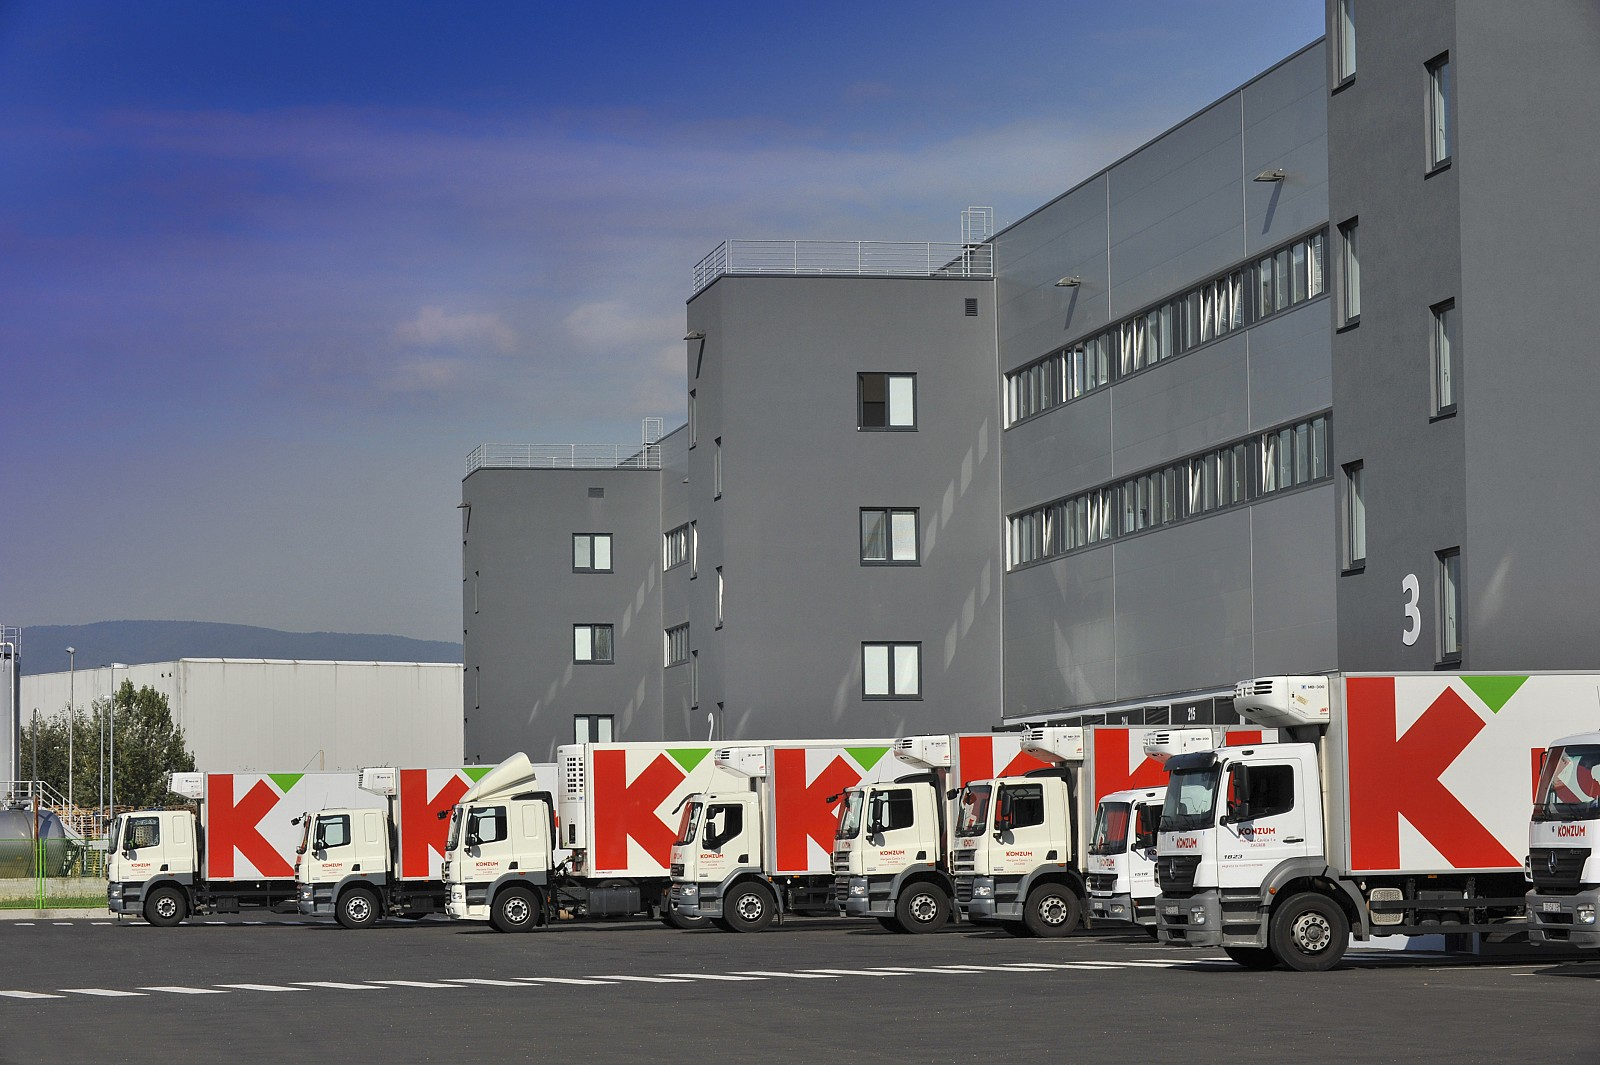 Audit shows Croatia's Agrokor worth 22.05 bln kuna (2.9 bln euro) less than reported